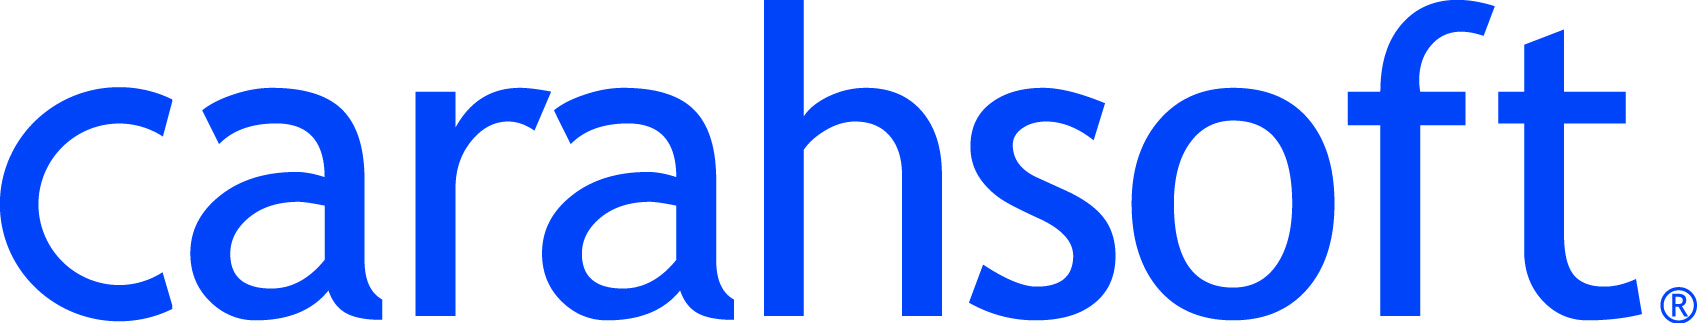 carahsoft_logo_blue_032311.jpg